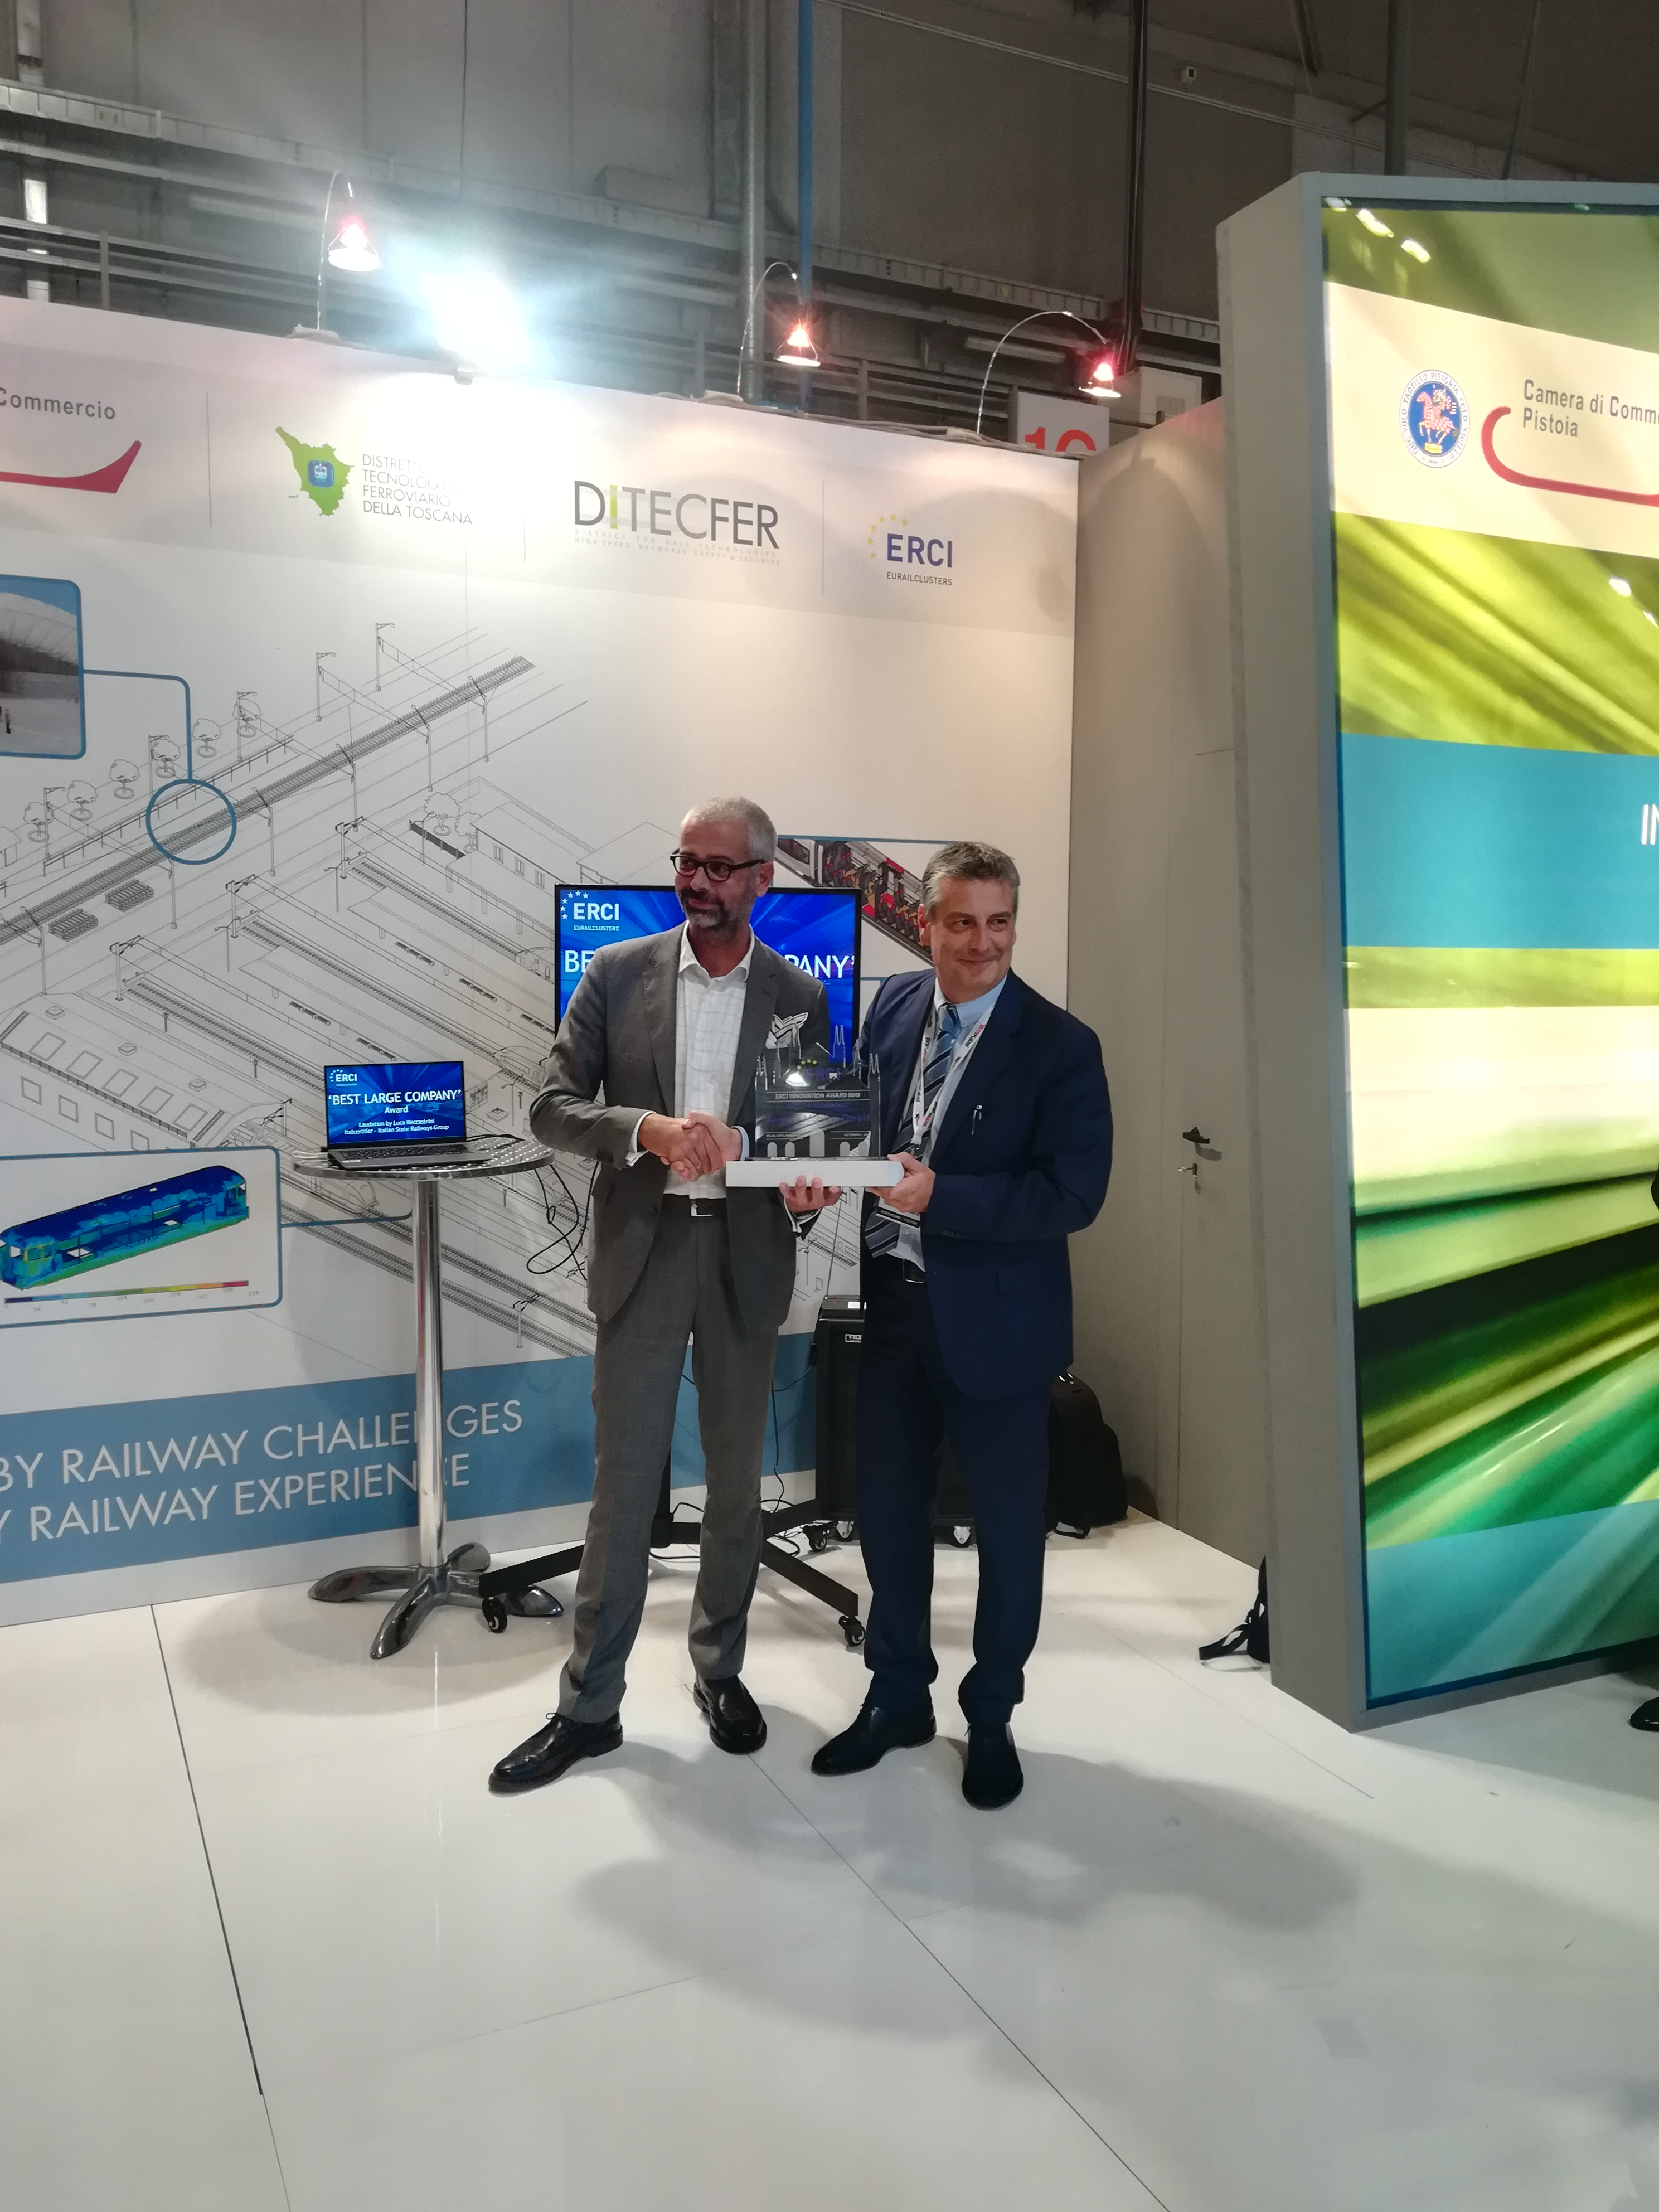 """Best Large Company"" award: Siemens Mobility GmbH"